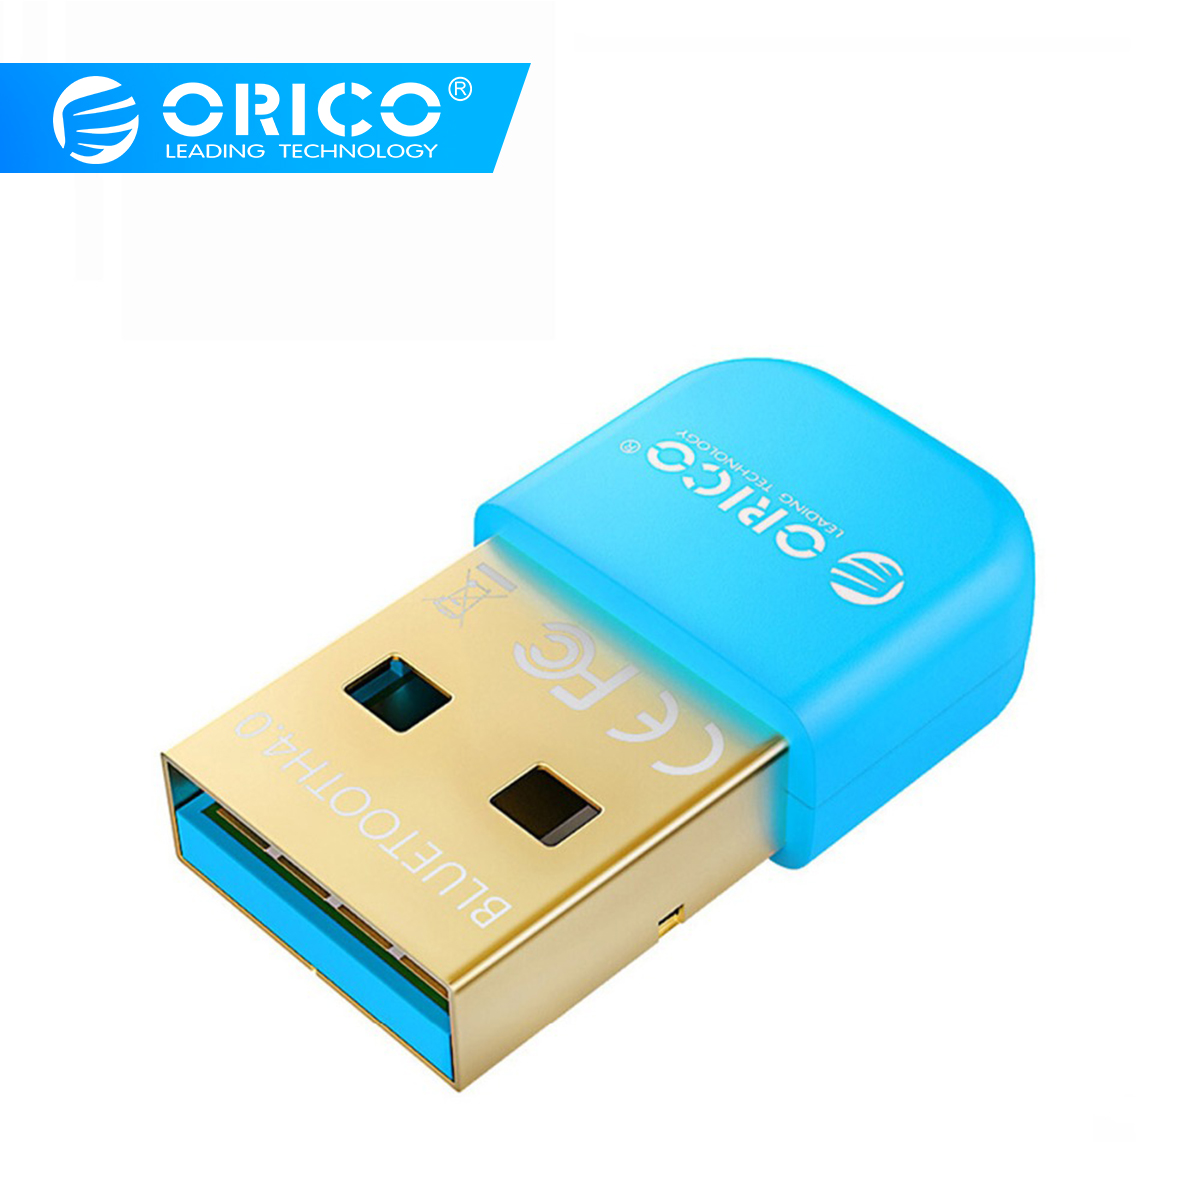 ORICO Bluetooth4.0 Adapter <font><b>USB</b></font> Dongle Sender Empfänger für PC für Windows Vista Kompatibel <font><b>Bluetooth</b></font> 2,1/2,0/3,0 image